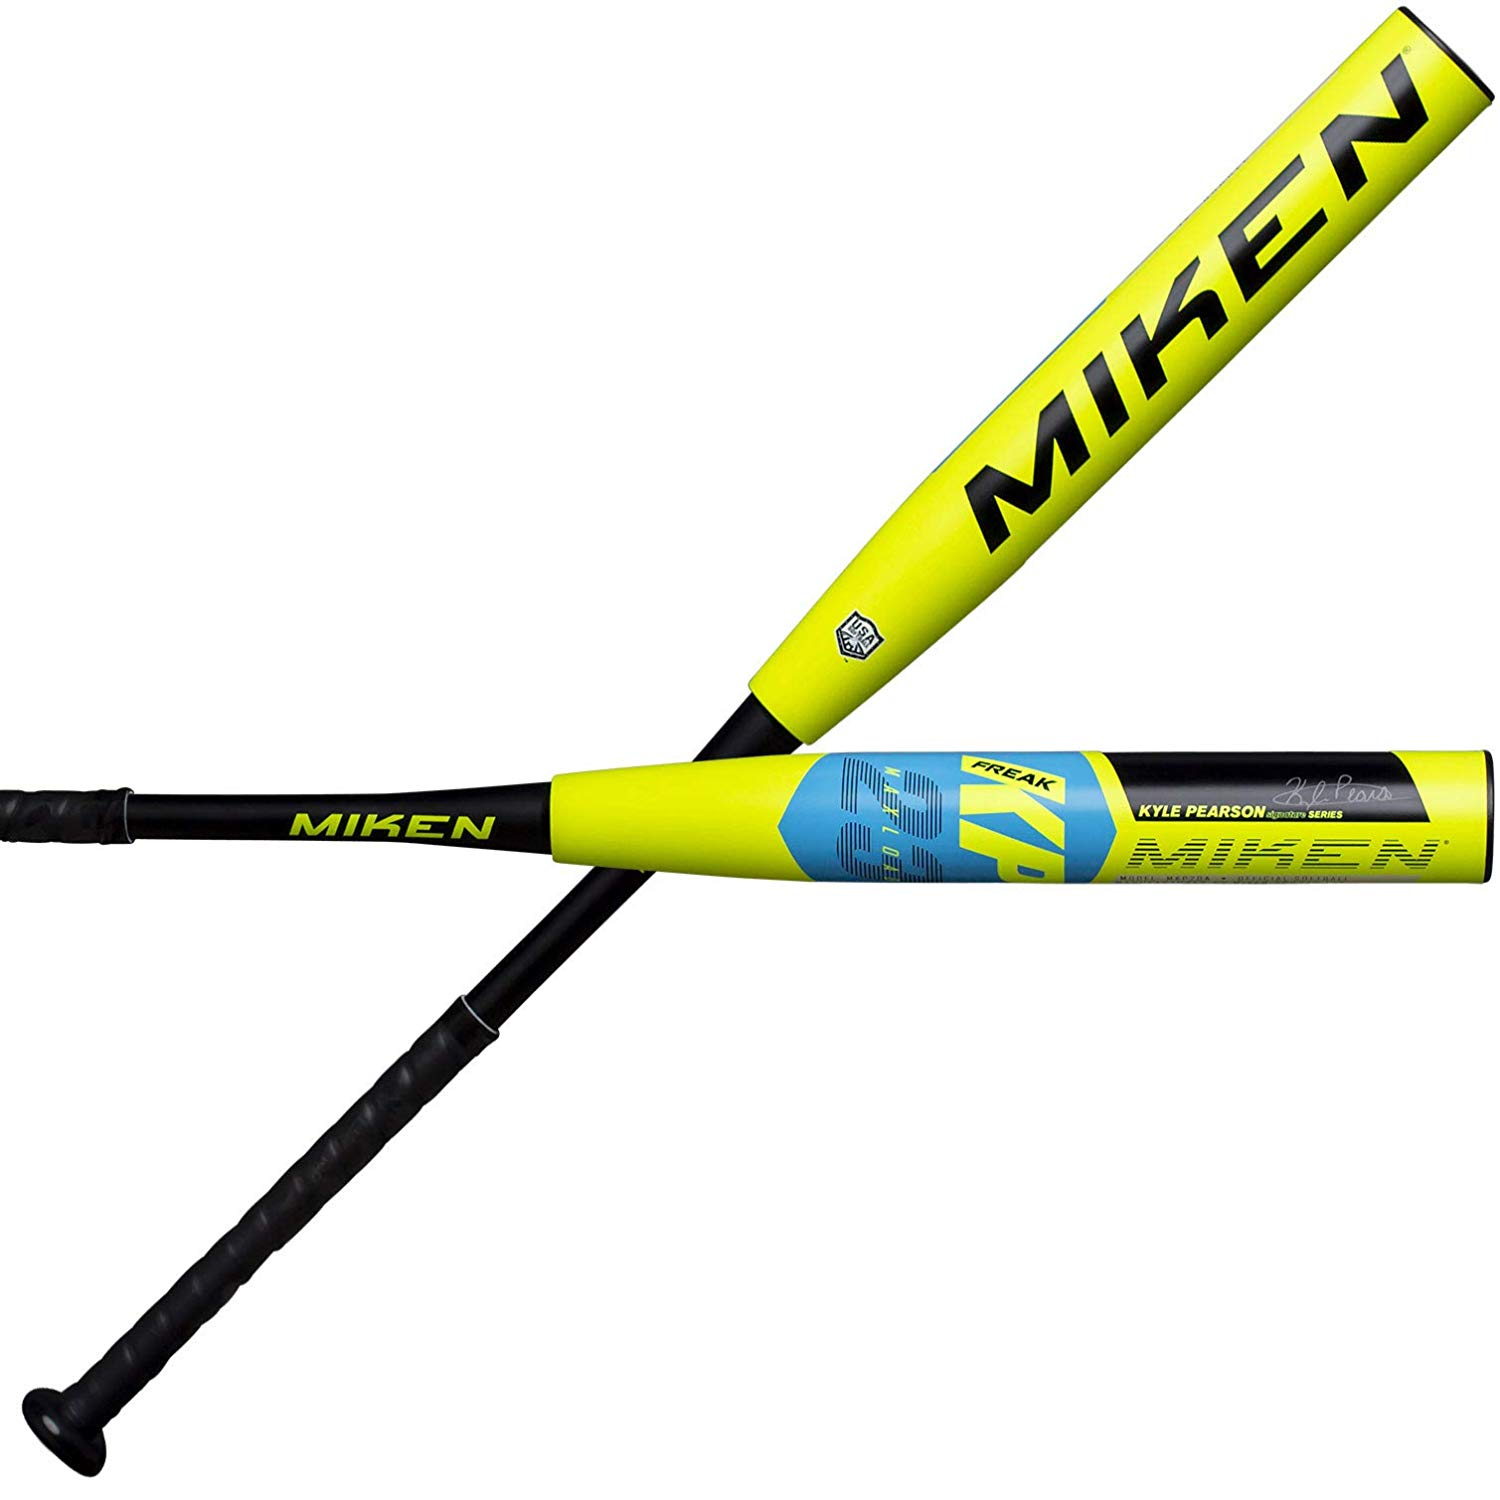 miken-2020-kyle-pearson-freak-23-maxload-asa-slow-pitch-softball-bat-34-inch-25-oz MKP20A-3-25 Miken 658925042928 DESIGNED FOR ADULTS PLAYING RECREATIONAL AND COMPETITIVE SLOWPITCH SOFTBALL this Miken